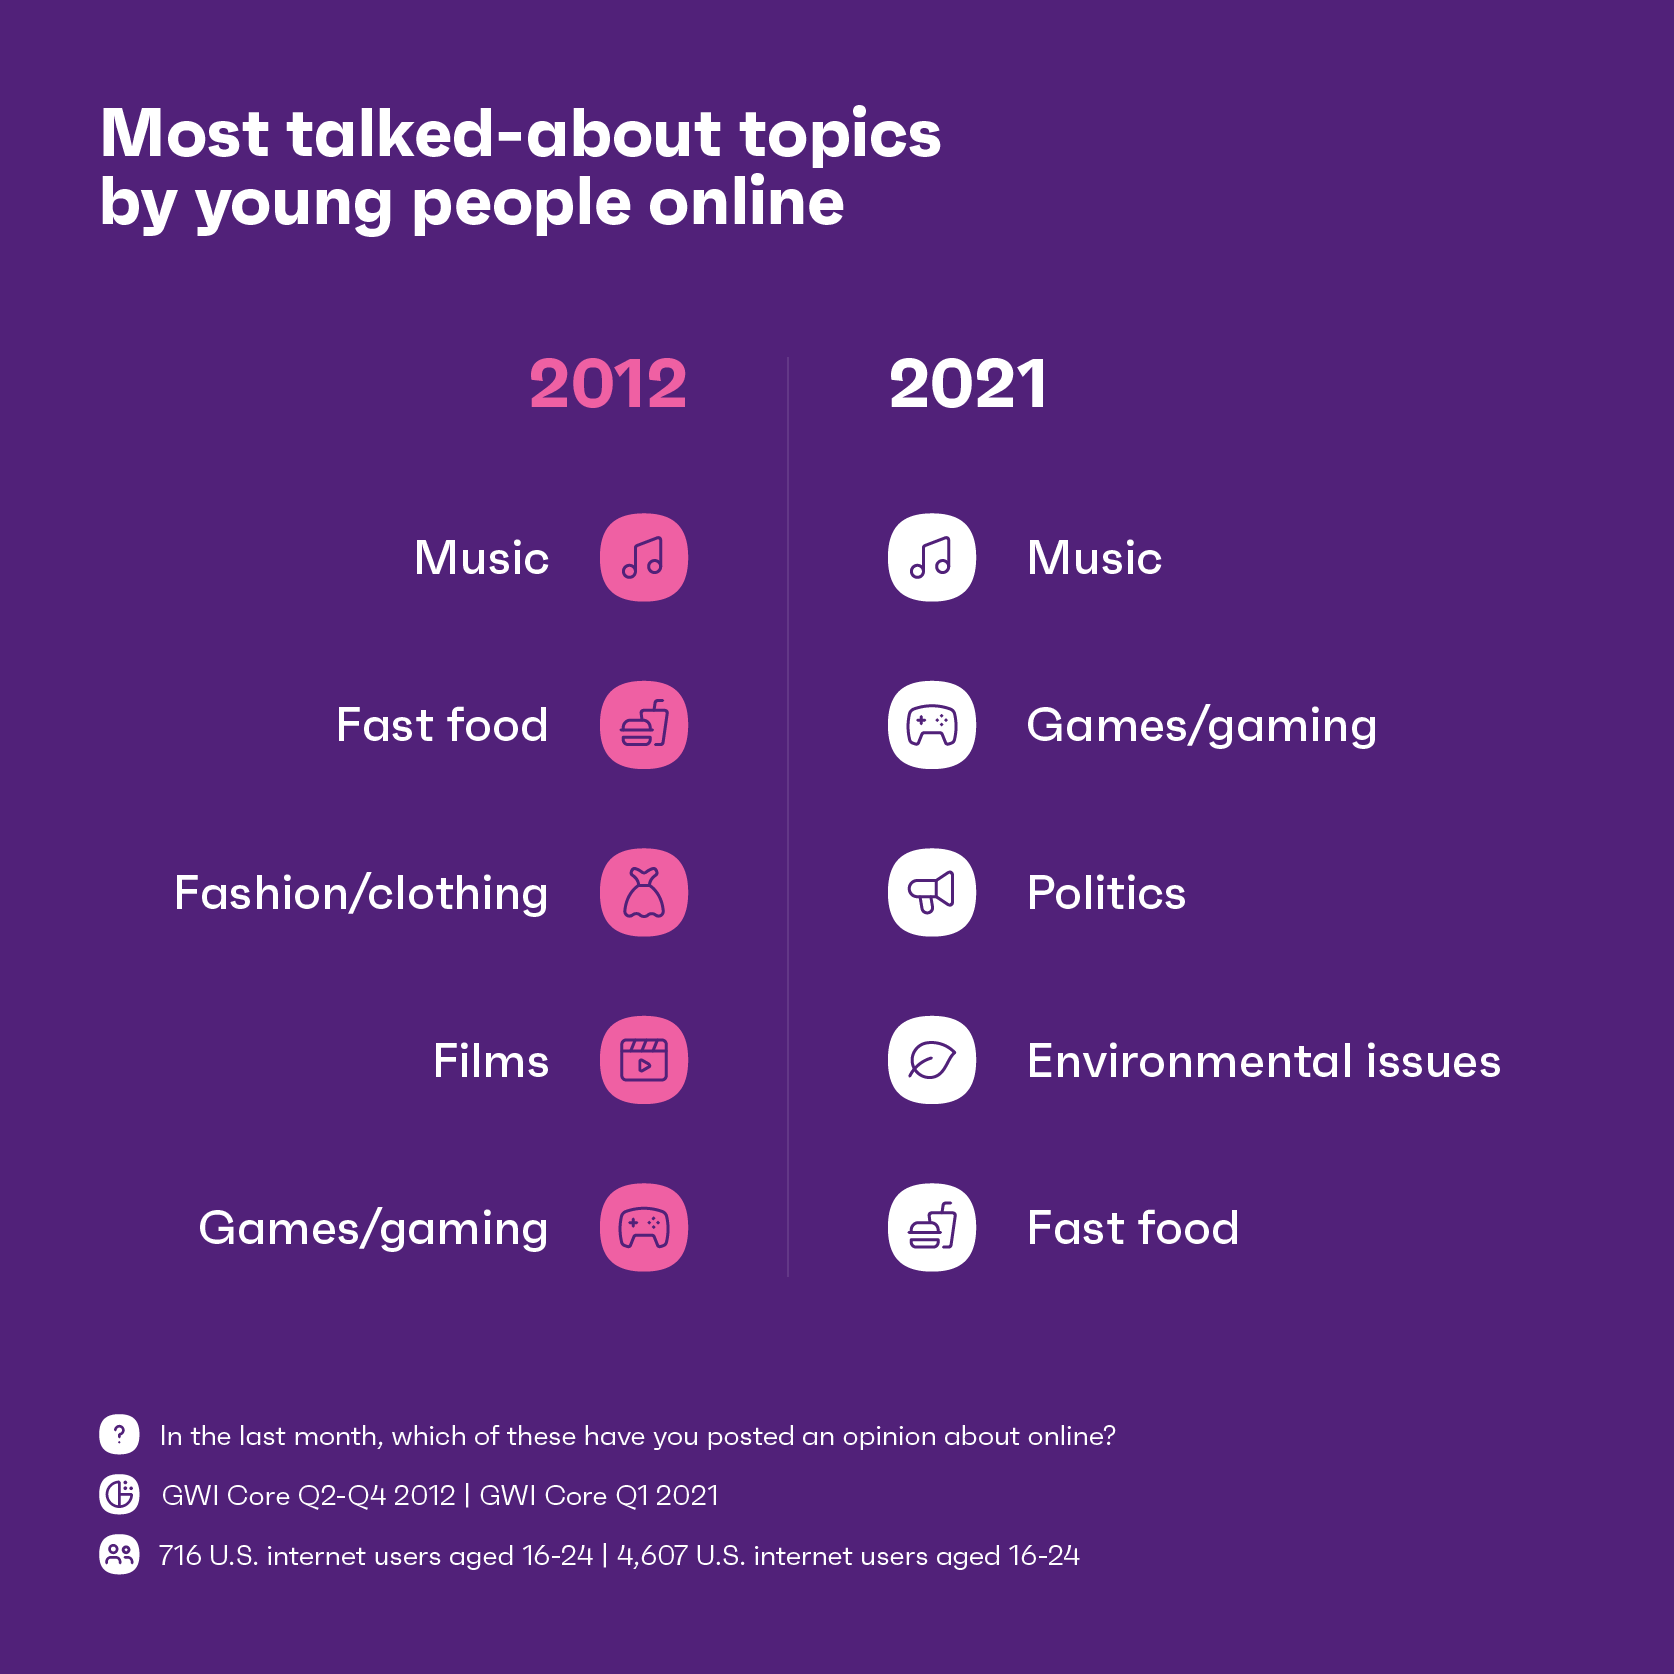 chart showing the most talked about topics by young people online